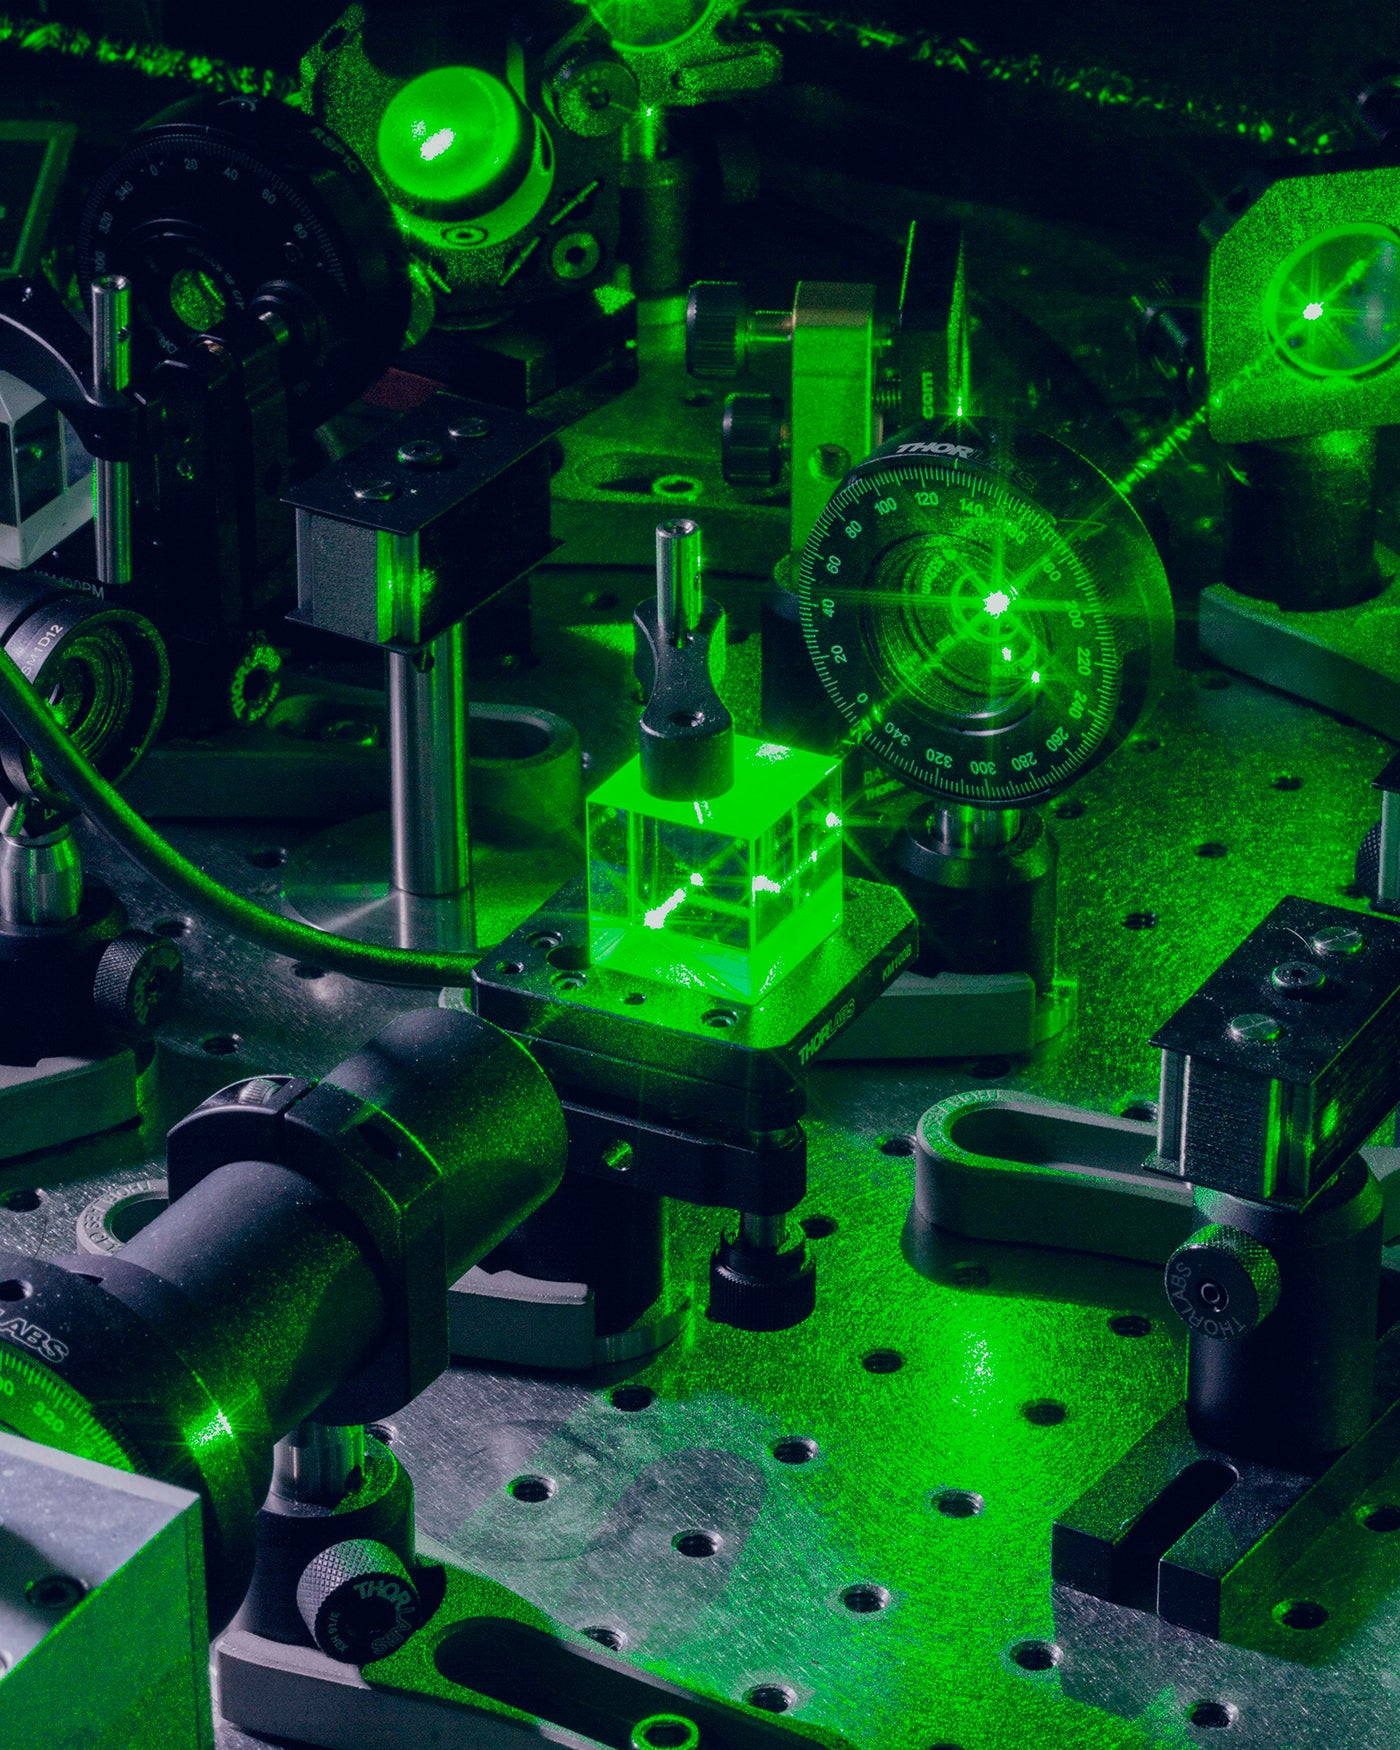 An optical experiment at the Quantum Photonics Laboratory in MIT Boston by Mattia Balsamini